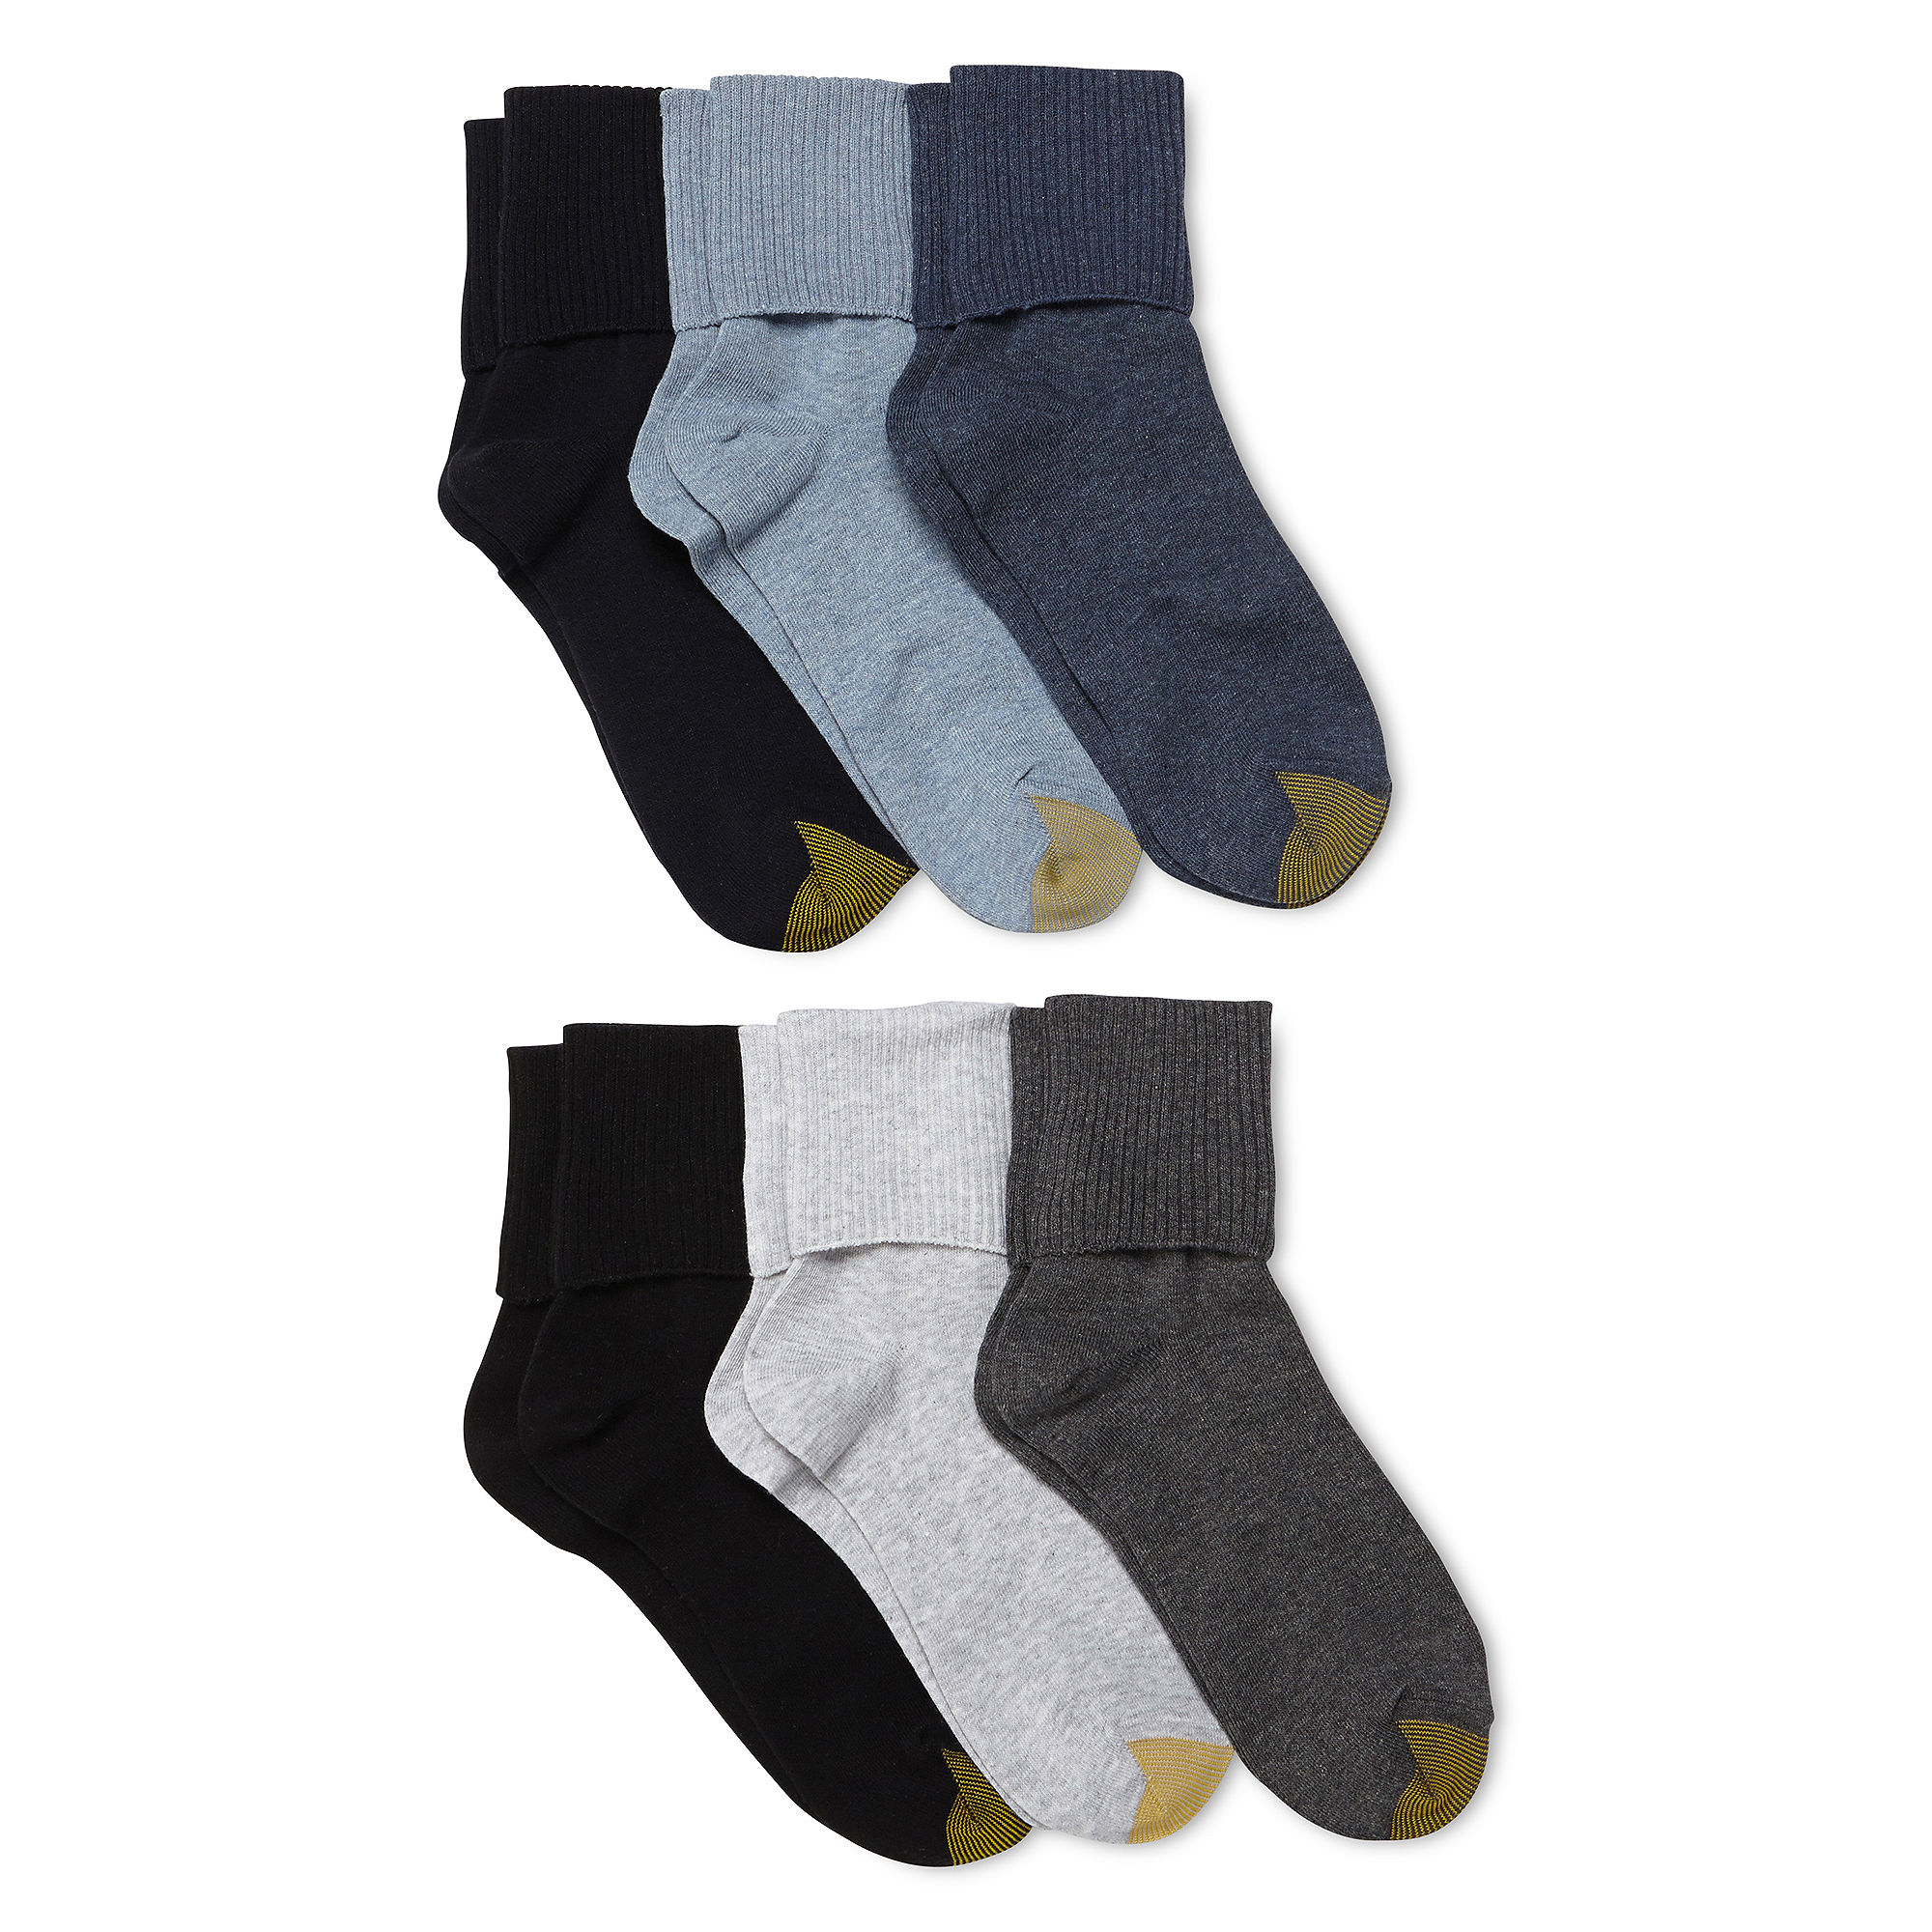 Gold Toe Goldtoe 6 Pk Turn Cuff Crew Socks Extended Sizes | Underwear, Hosiery, Footwear and Clothing